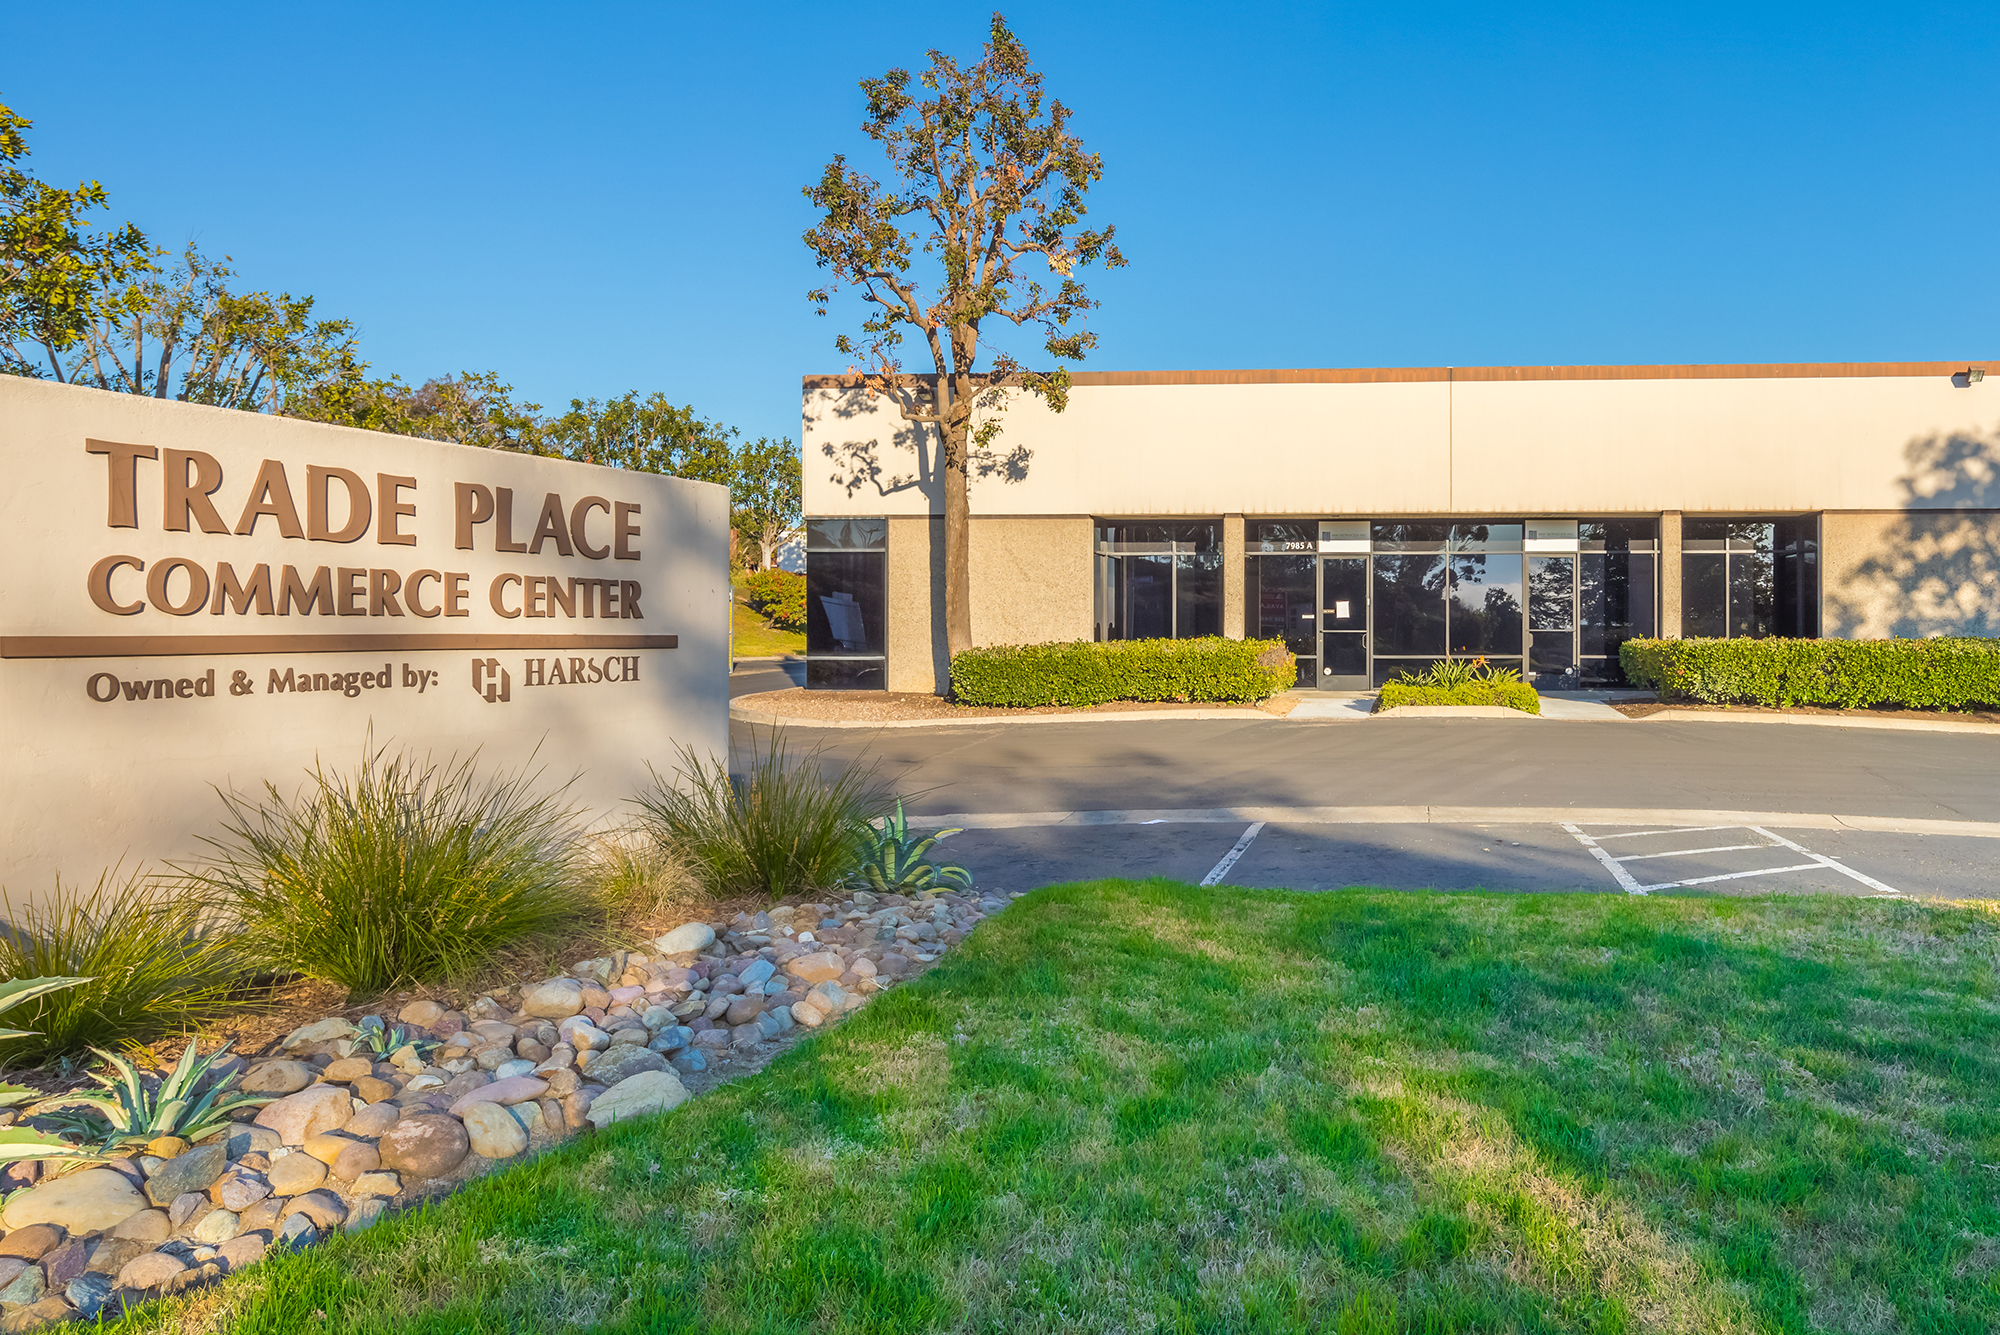 Located in Miramar, the 246,000 square foot Trade Place Commerce Center offers great access to Mira-Mesa and all freeways in and out of the area.